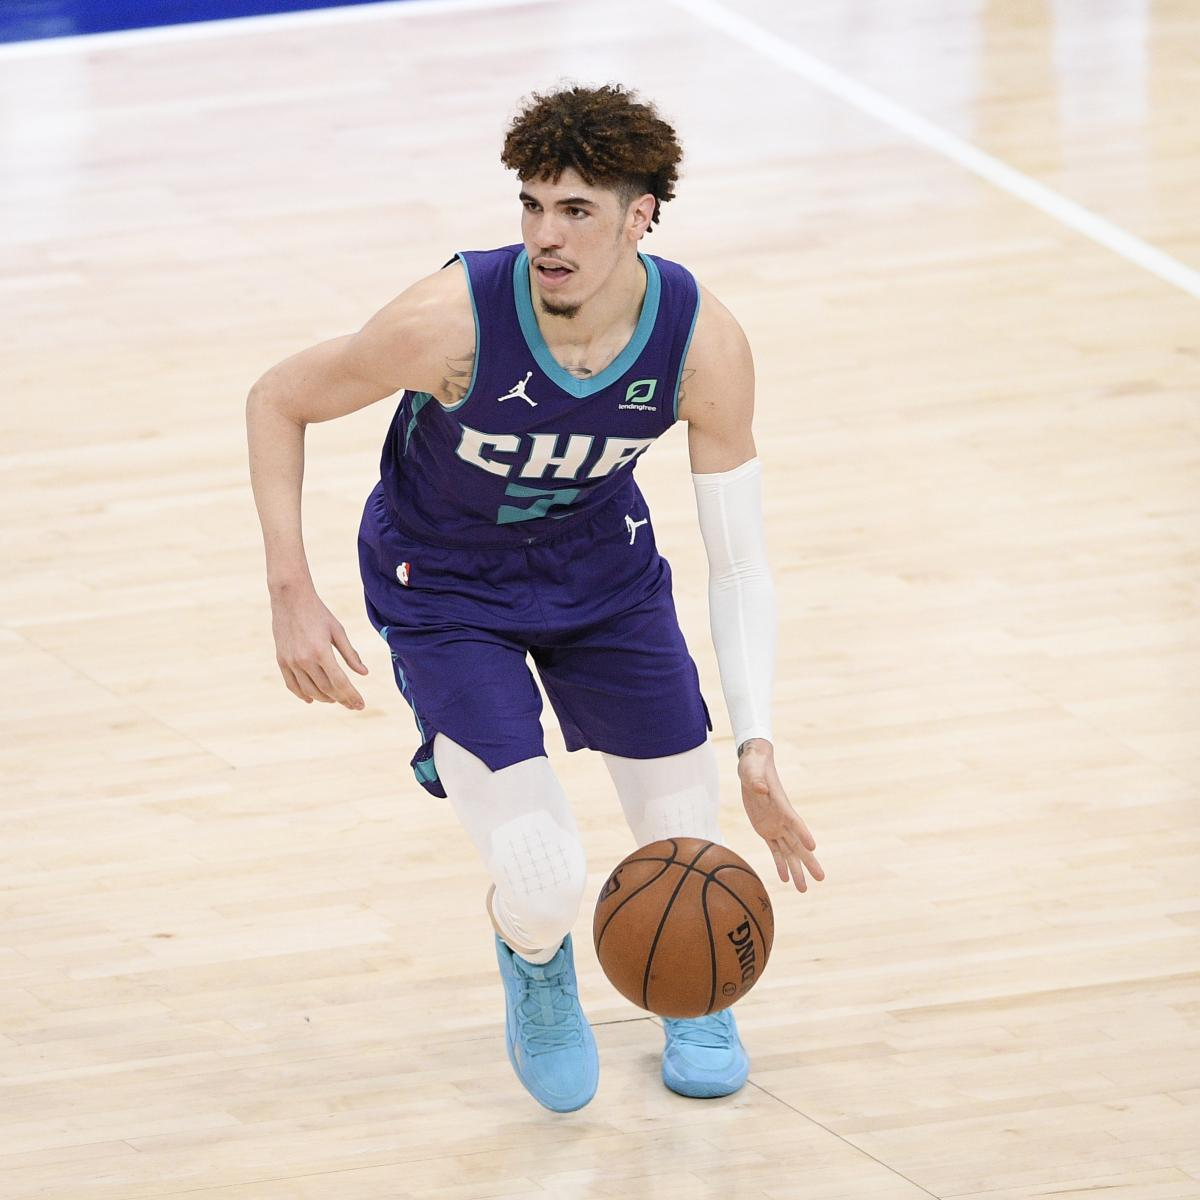 Report: LaMelo Ball Named 2020-21 NBA Rookie of the Year over Anthony Edwards